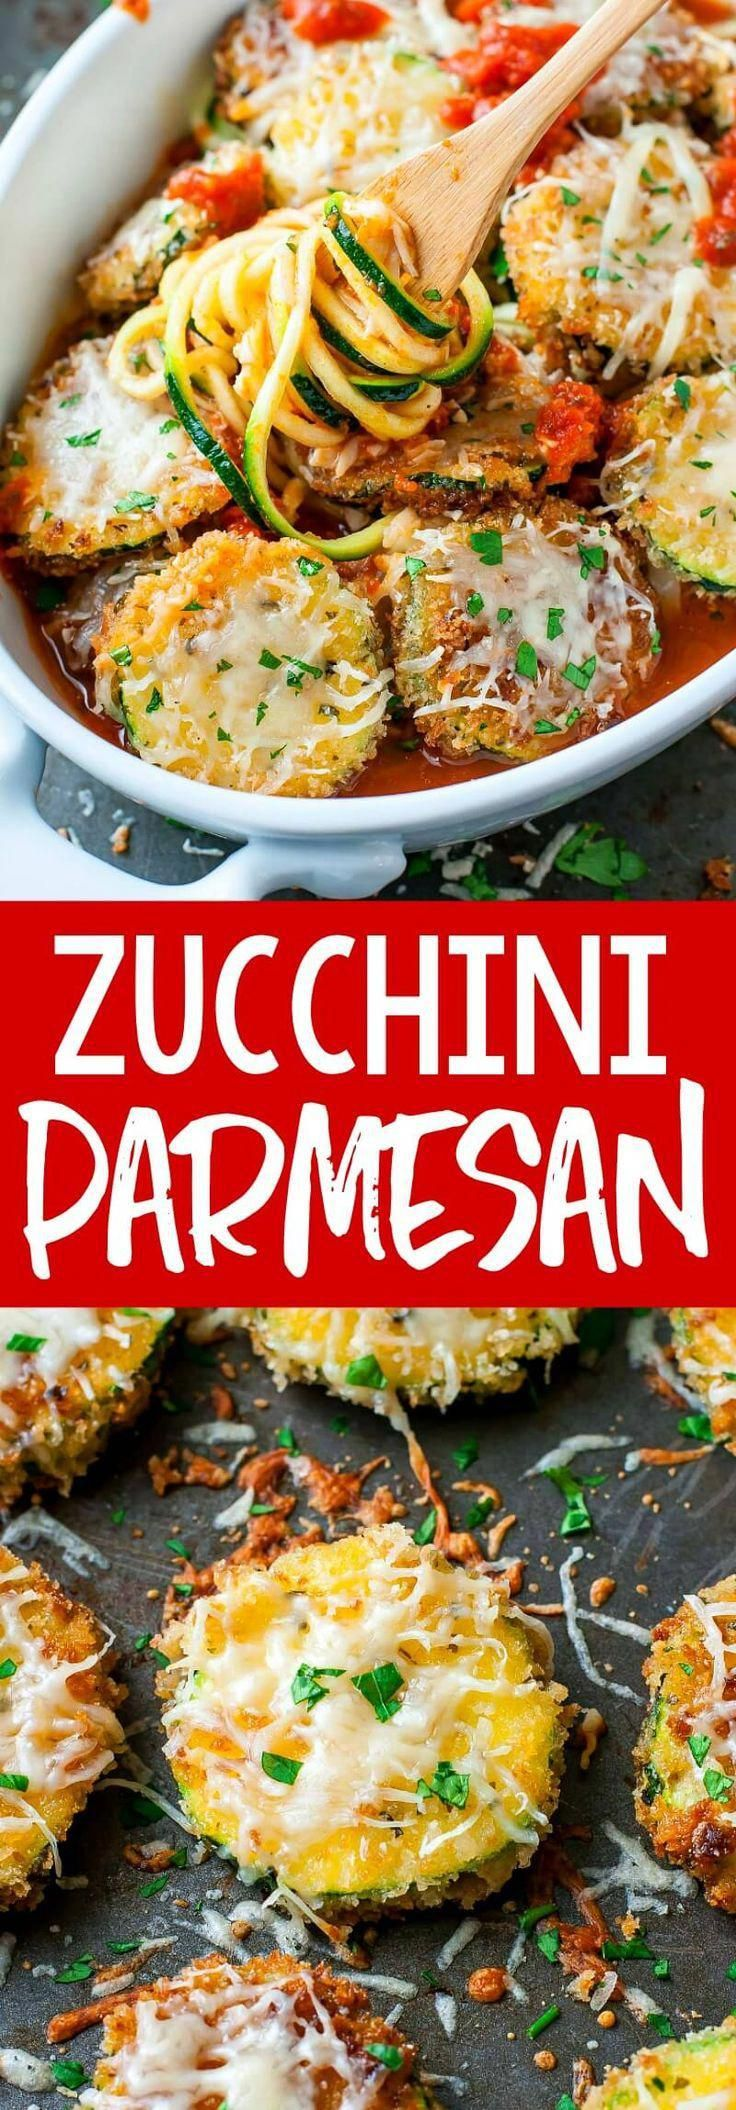 Were obsessed with this vegetarian Zucchini Parmesan Serve it up as a tasty appetizer or a delicious dinner complete with zucchini noodles or your favorite pasta